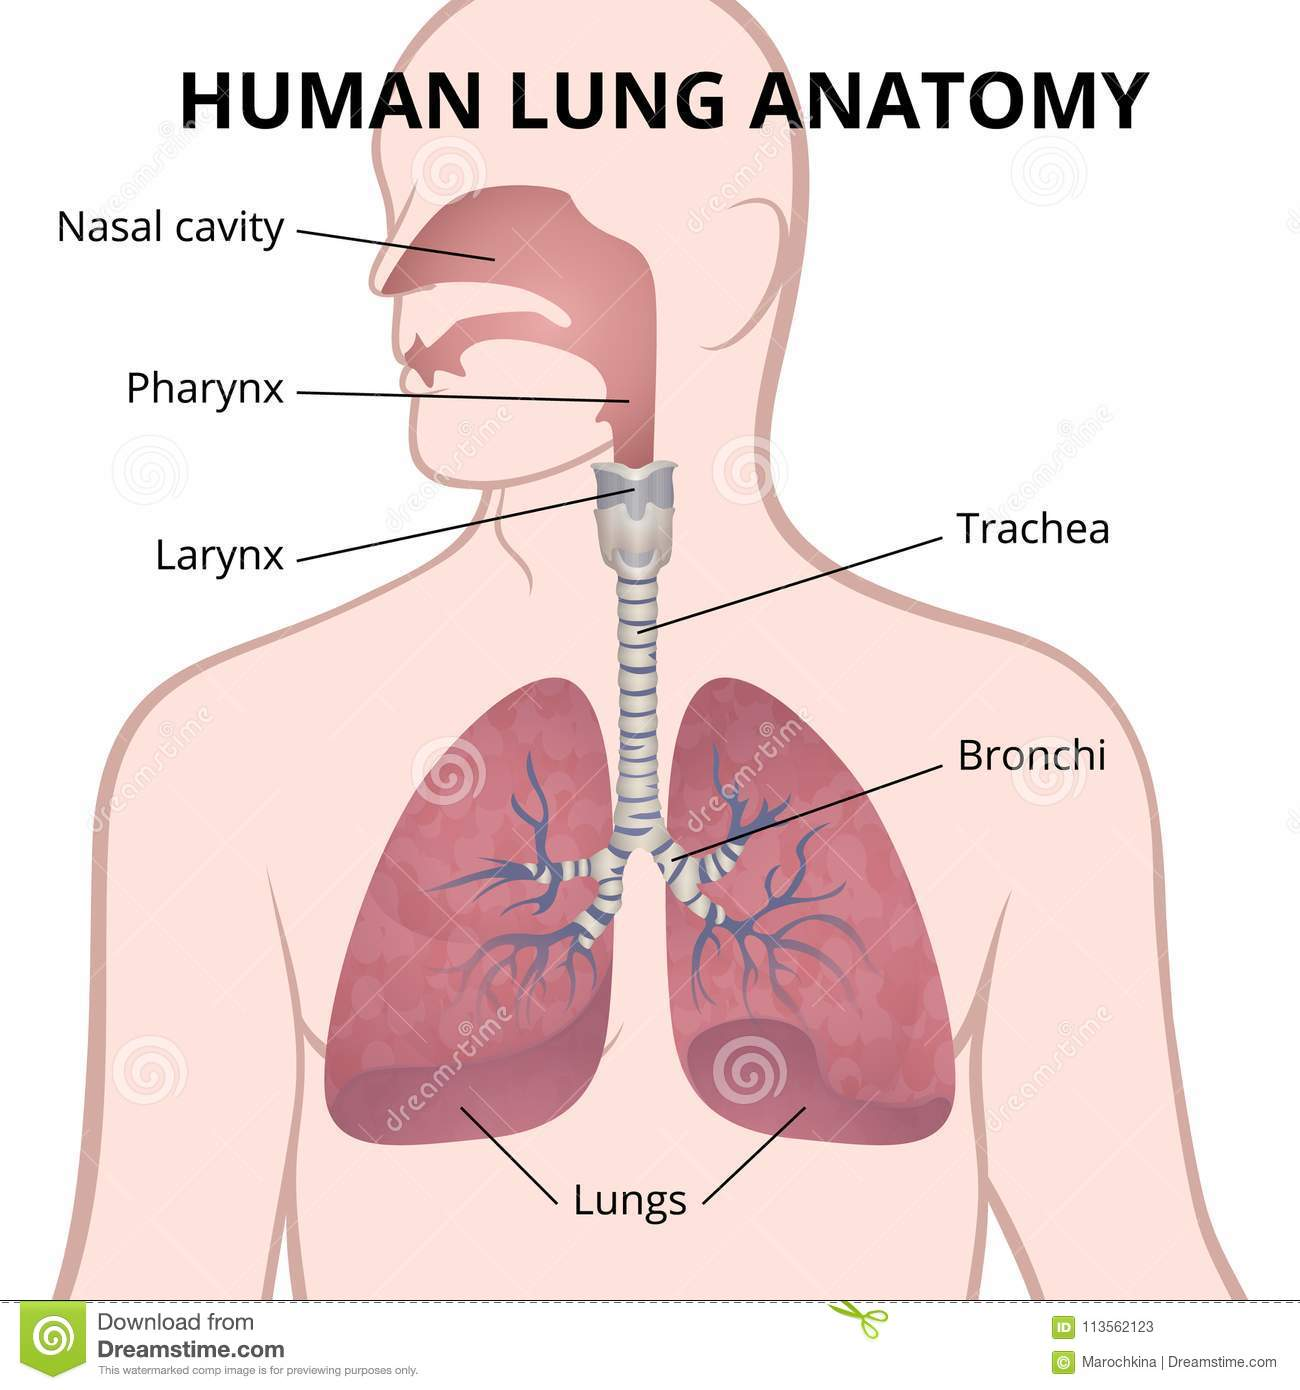 hight resolution of image of the anatomy of the lungs the location of the internal organs of respiration in the human body